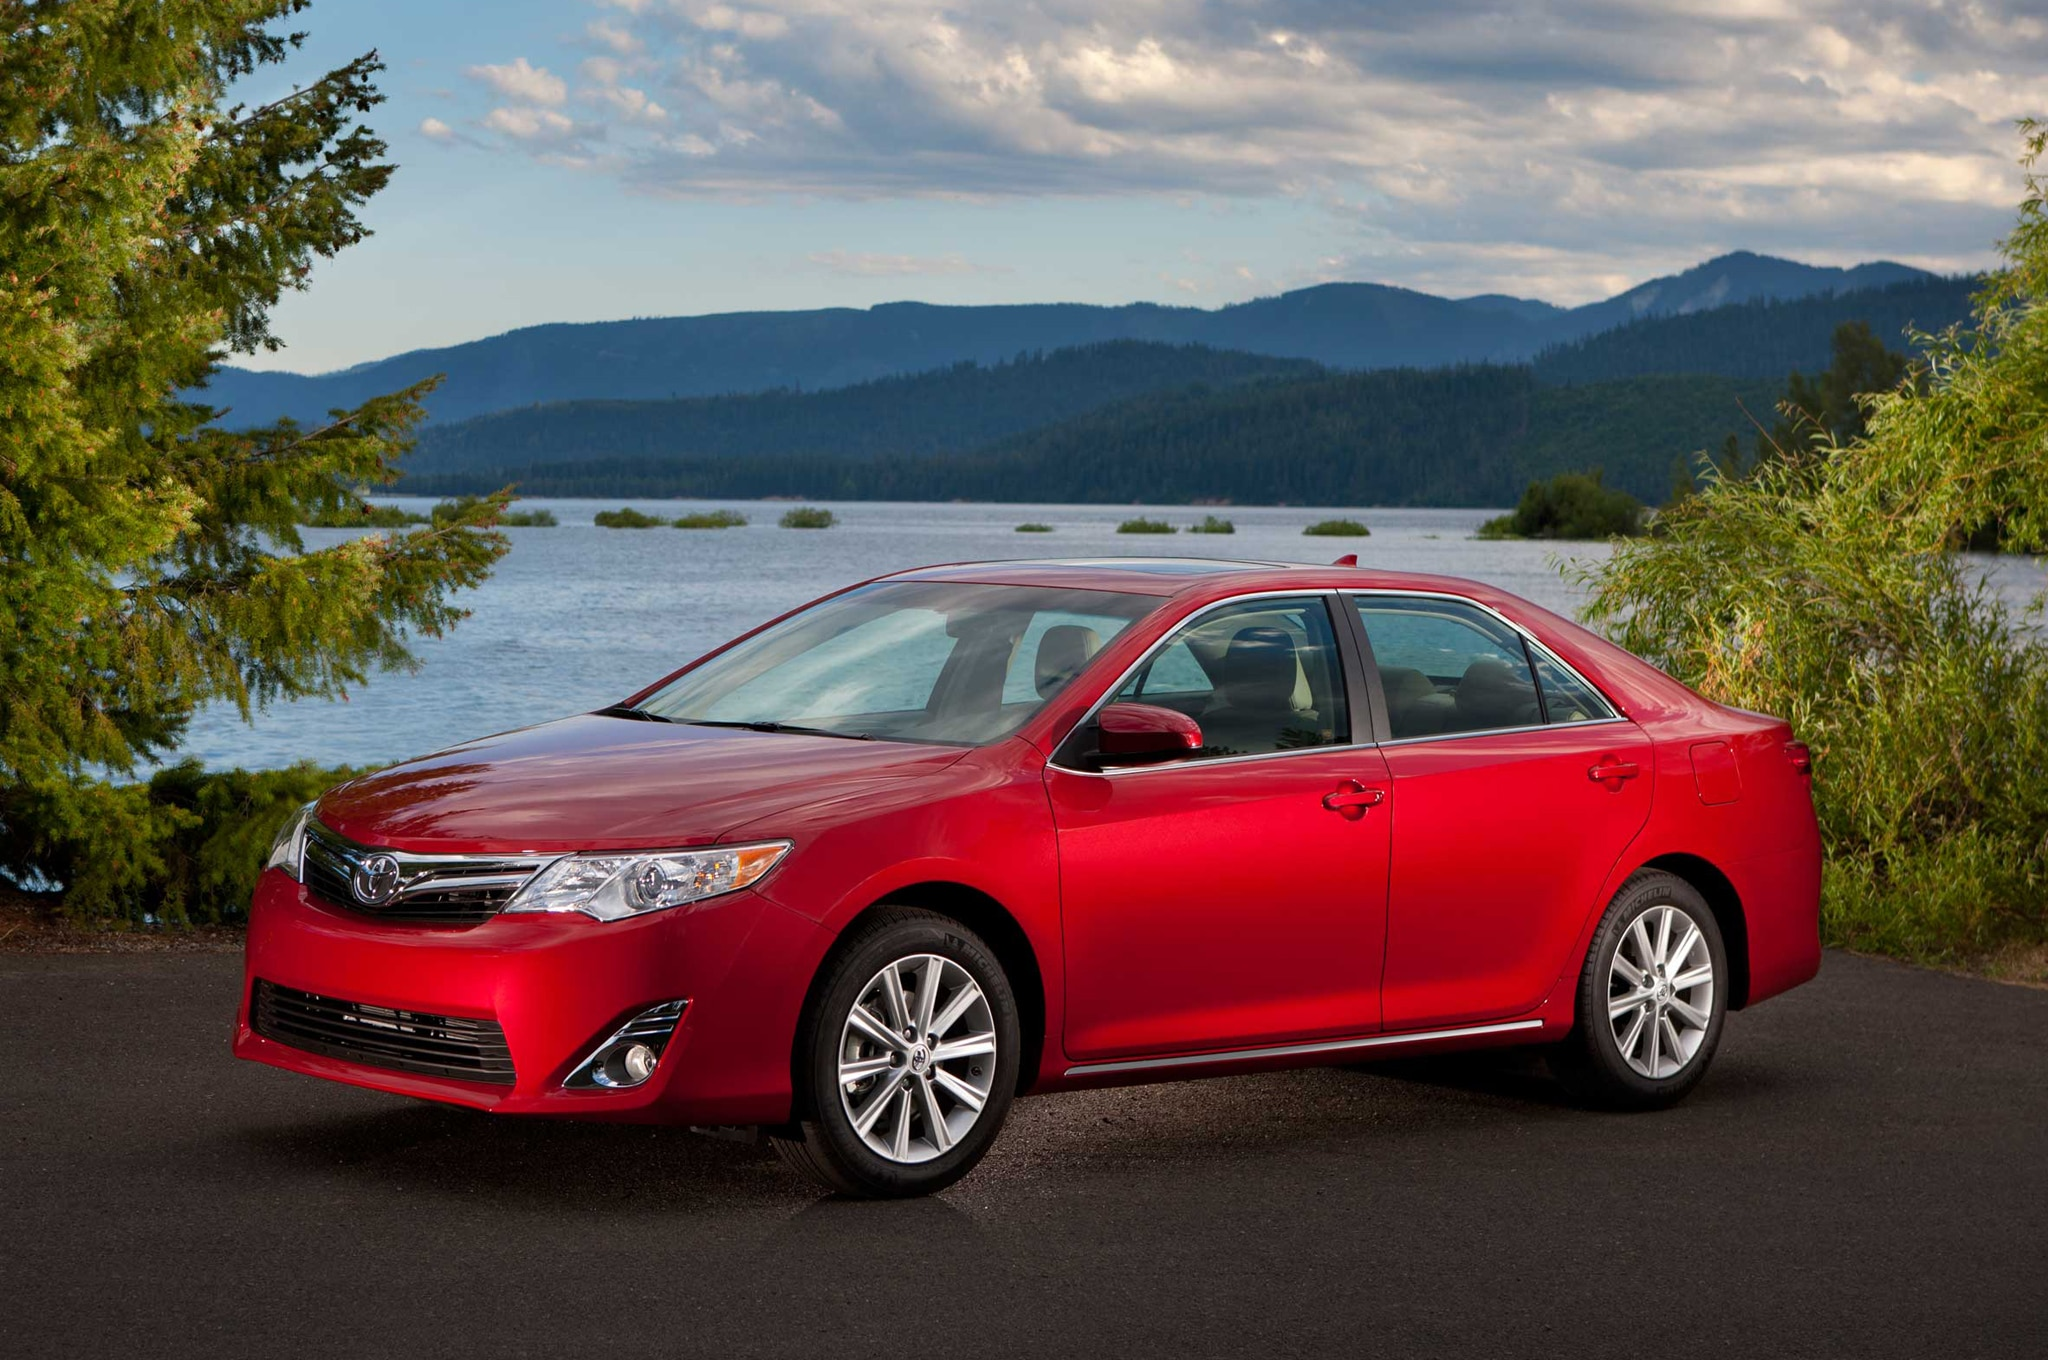 Used 2014 Toyota Camry For Sale  CarGurus